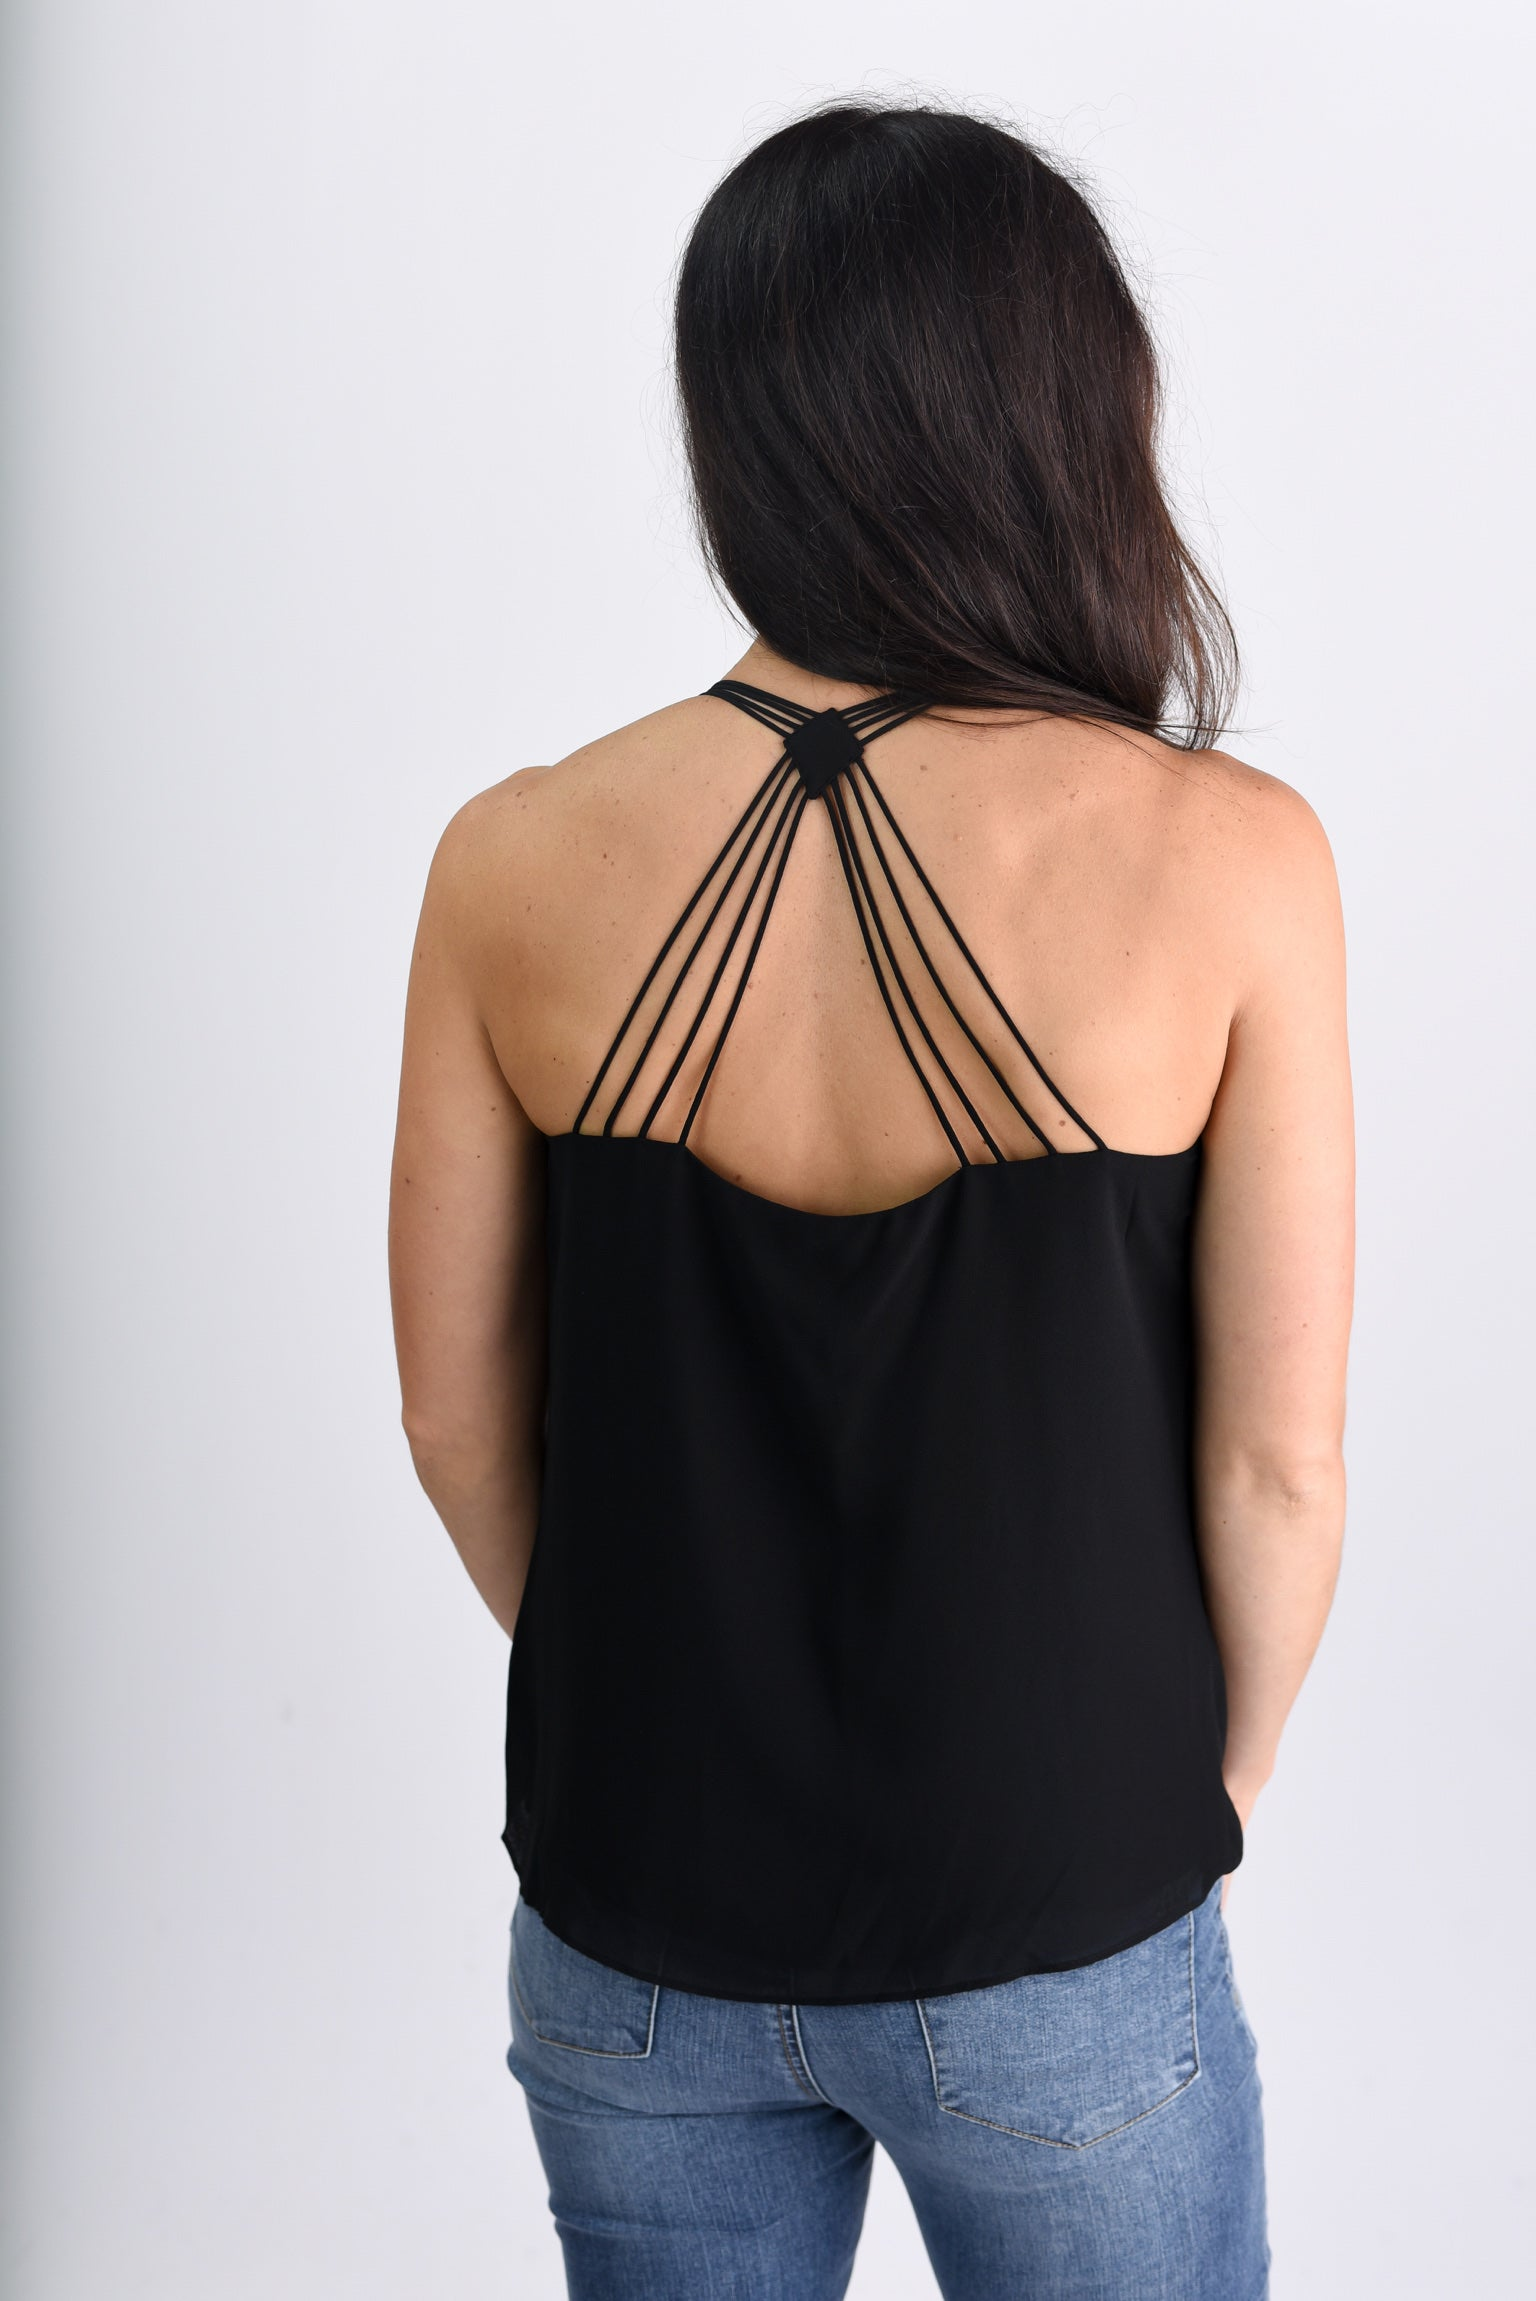 Don't Look Back Strappy Cami - Black